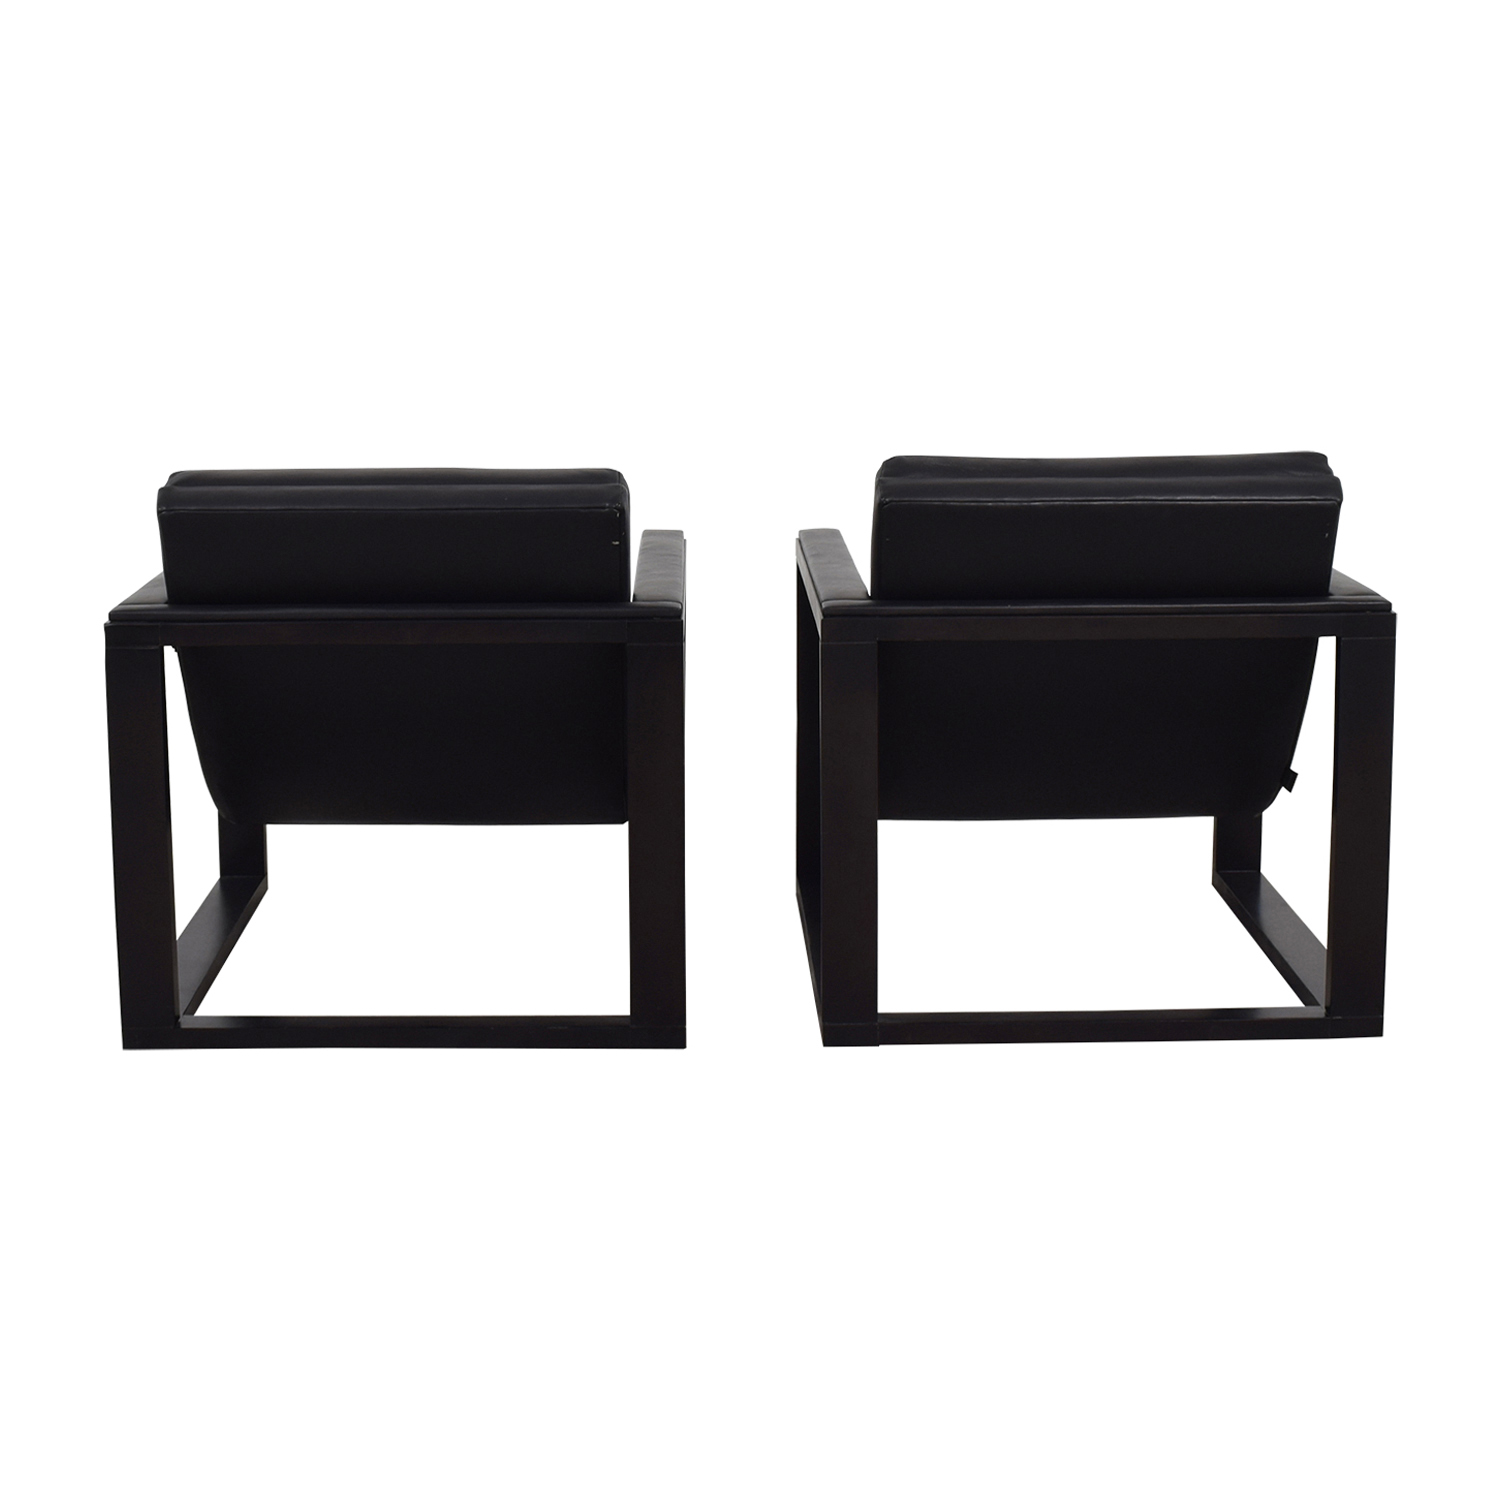 87% OFF   Maurice Villency Maurice Villency Architectural Black Accent  Chairs / Chairs